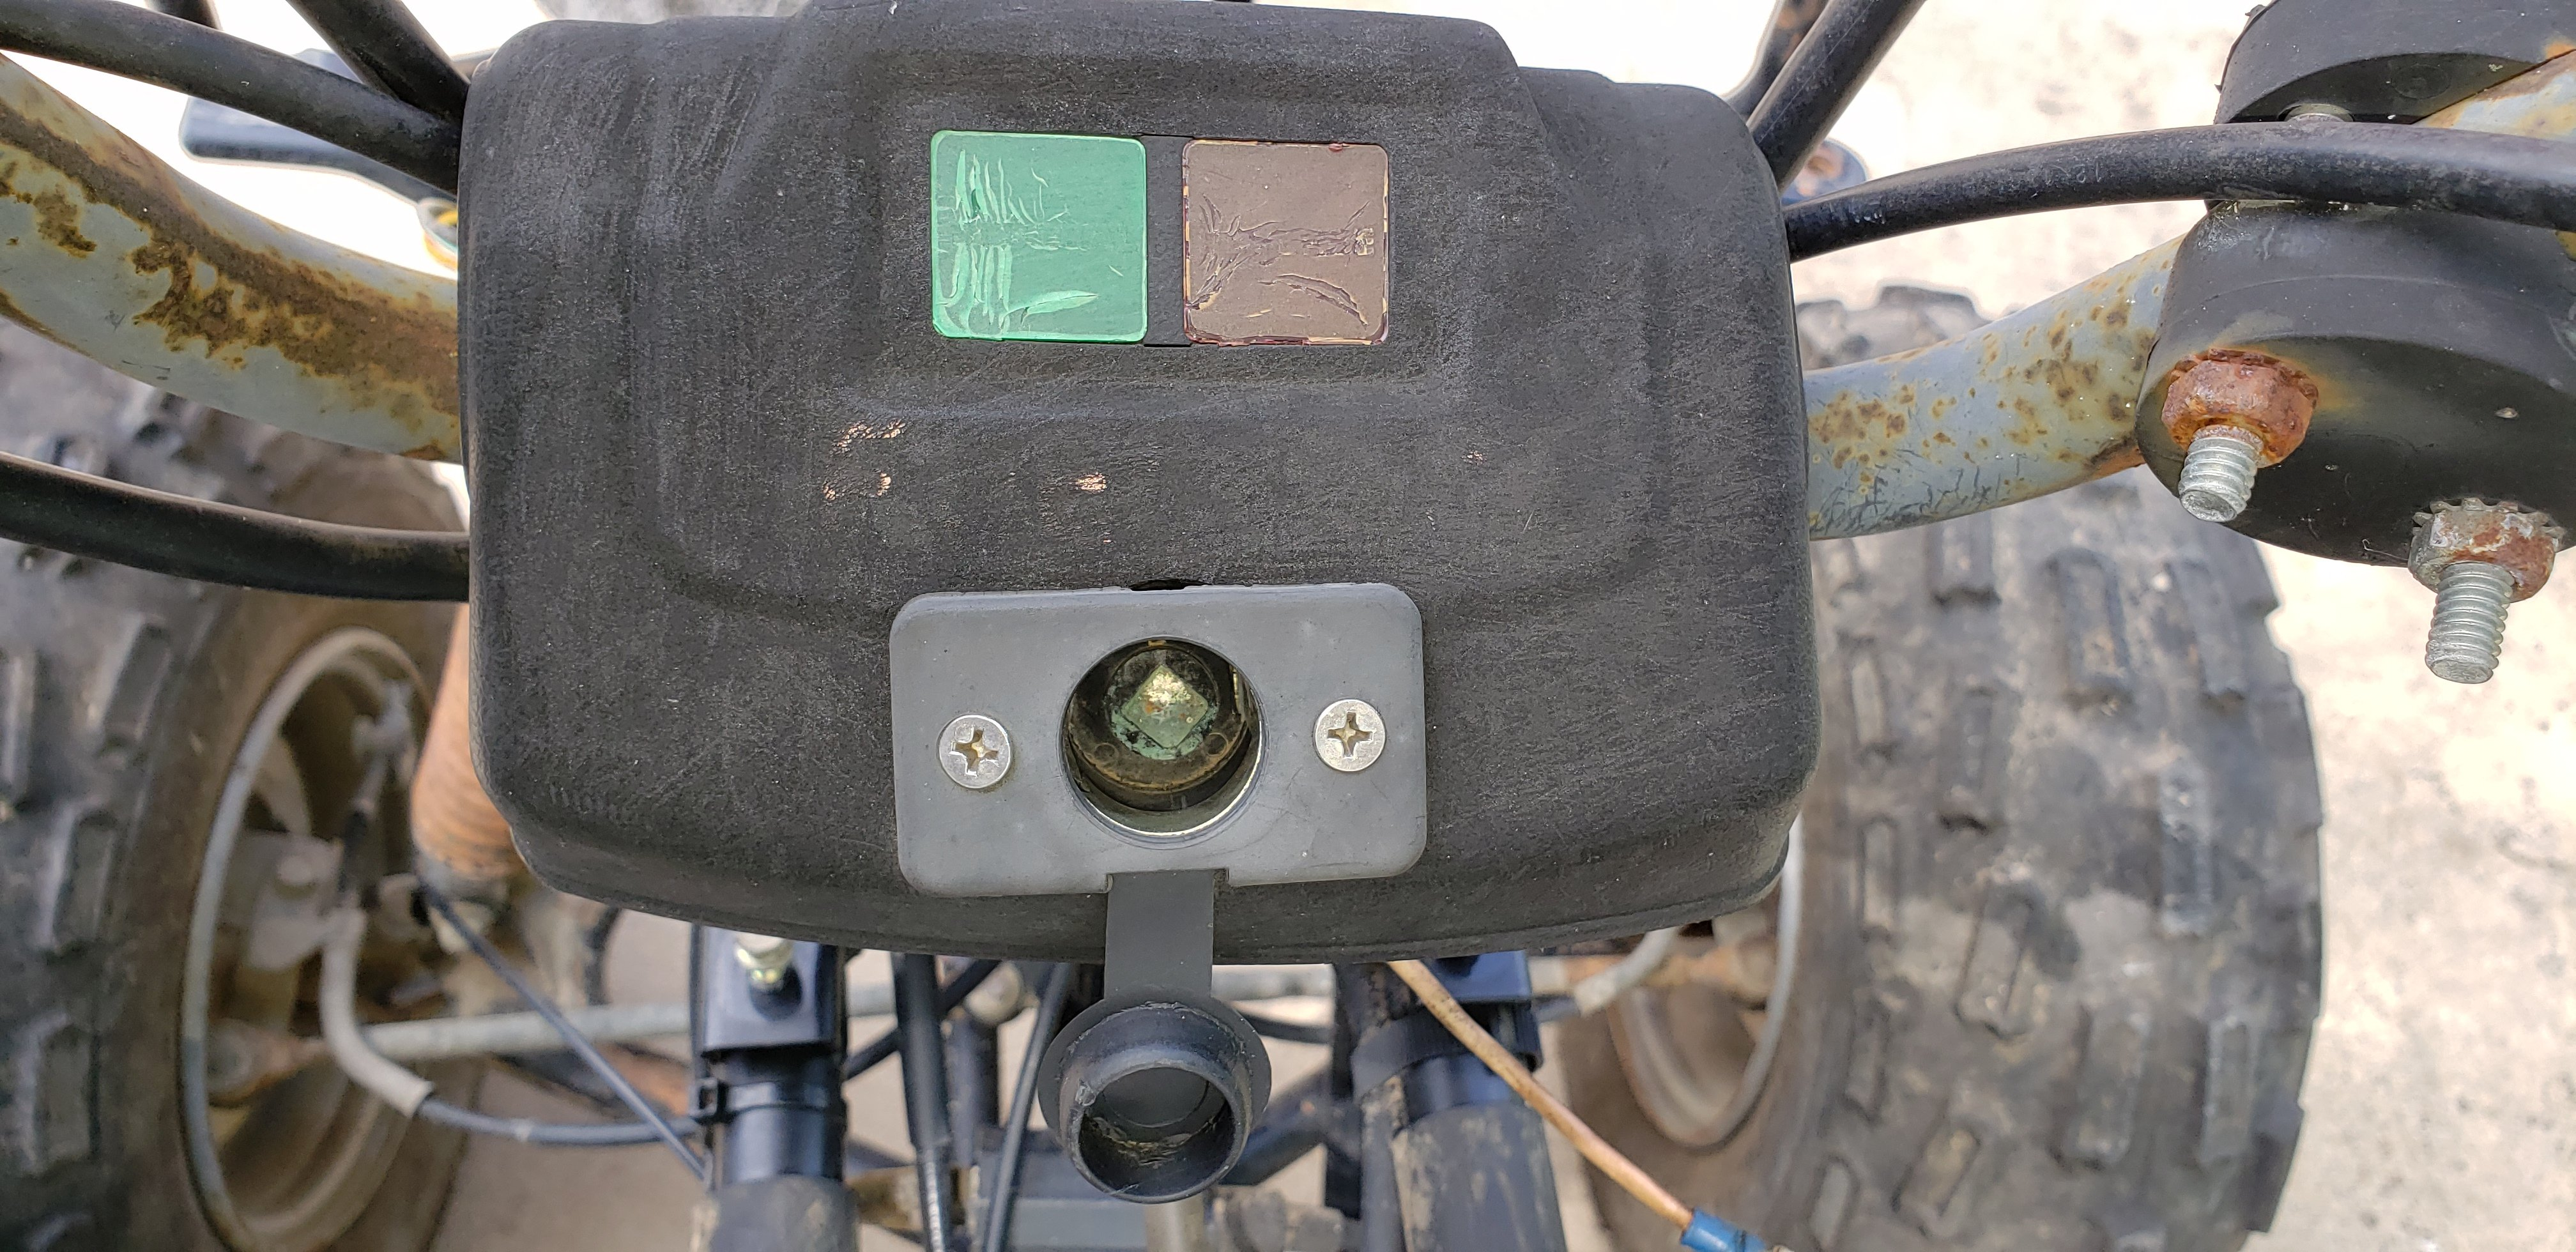 Bayou 220 no power at ign. switch or coil, lights etc ... on 1999 yamaha warrior 350 wiring diagram, 1999 yamaha banshee wiring diagram, 1999 yamaha big bear 350 wiring diagram, 1999 arctic cat 500 wiring diagram, 1999 honda trx 300 wiring diagram, 1999 yamaha kodiak 400 wiring diagram,